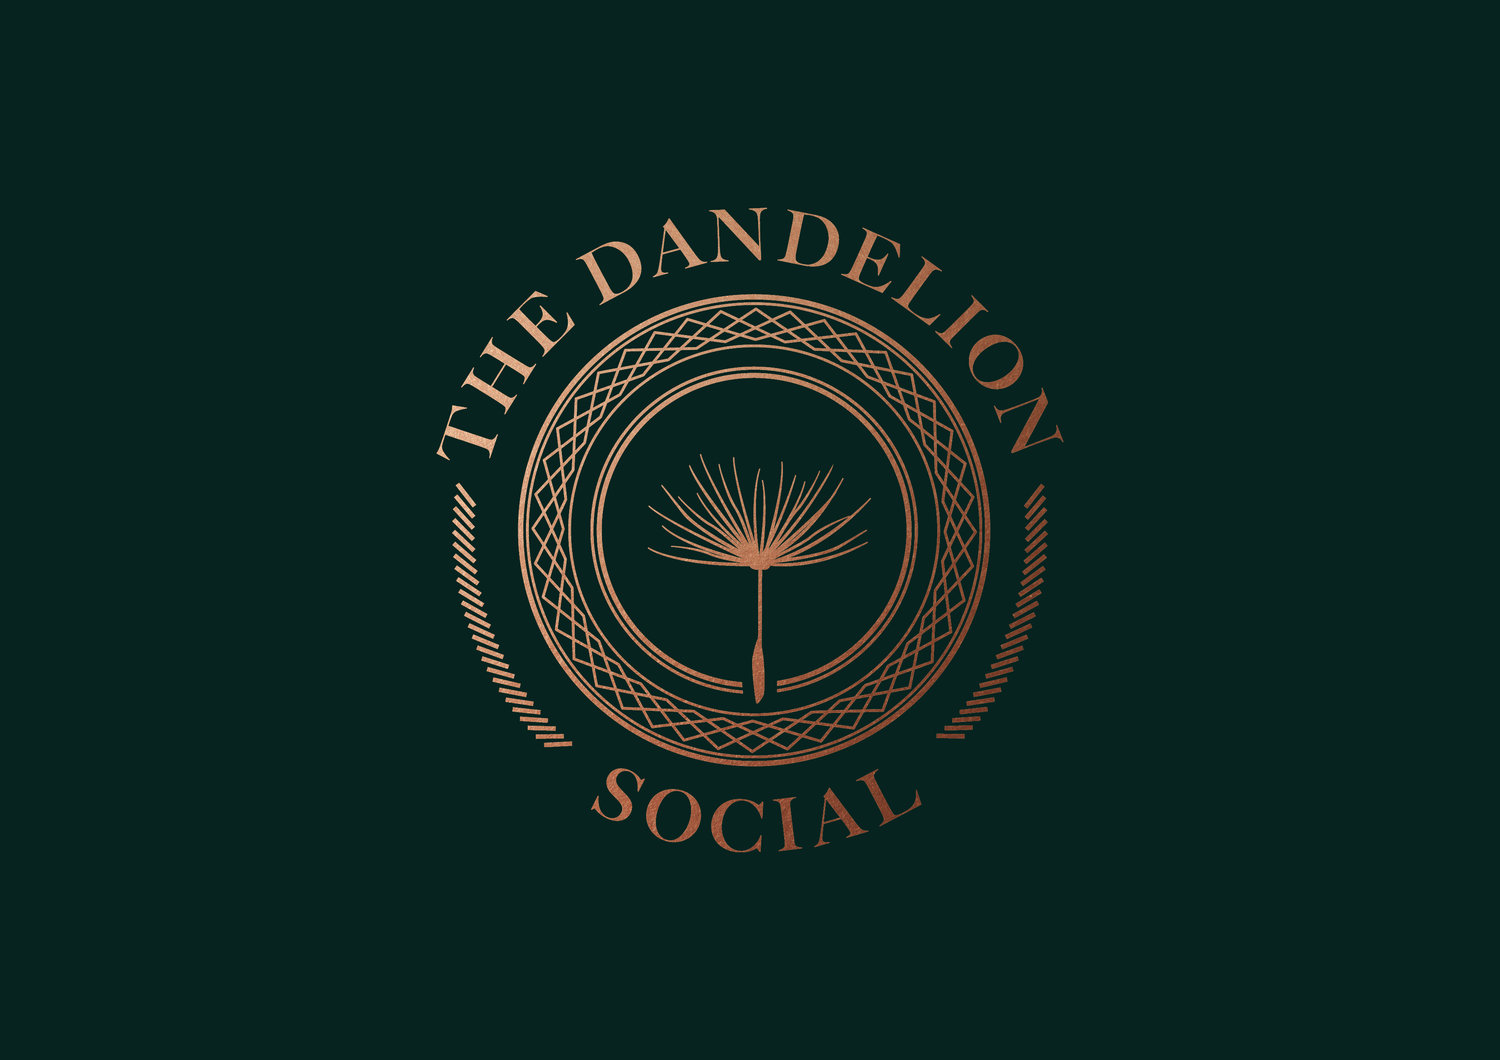 The DANDELION SOCIAL